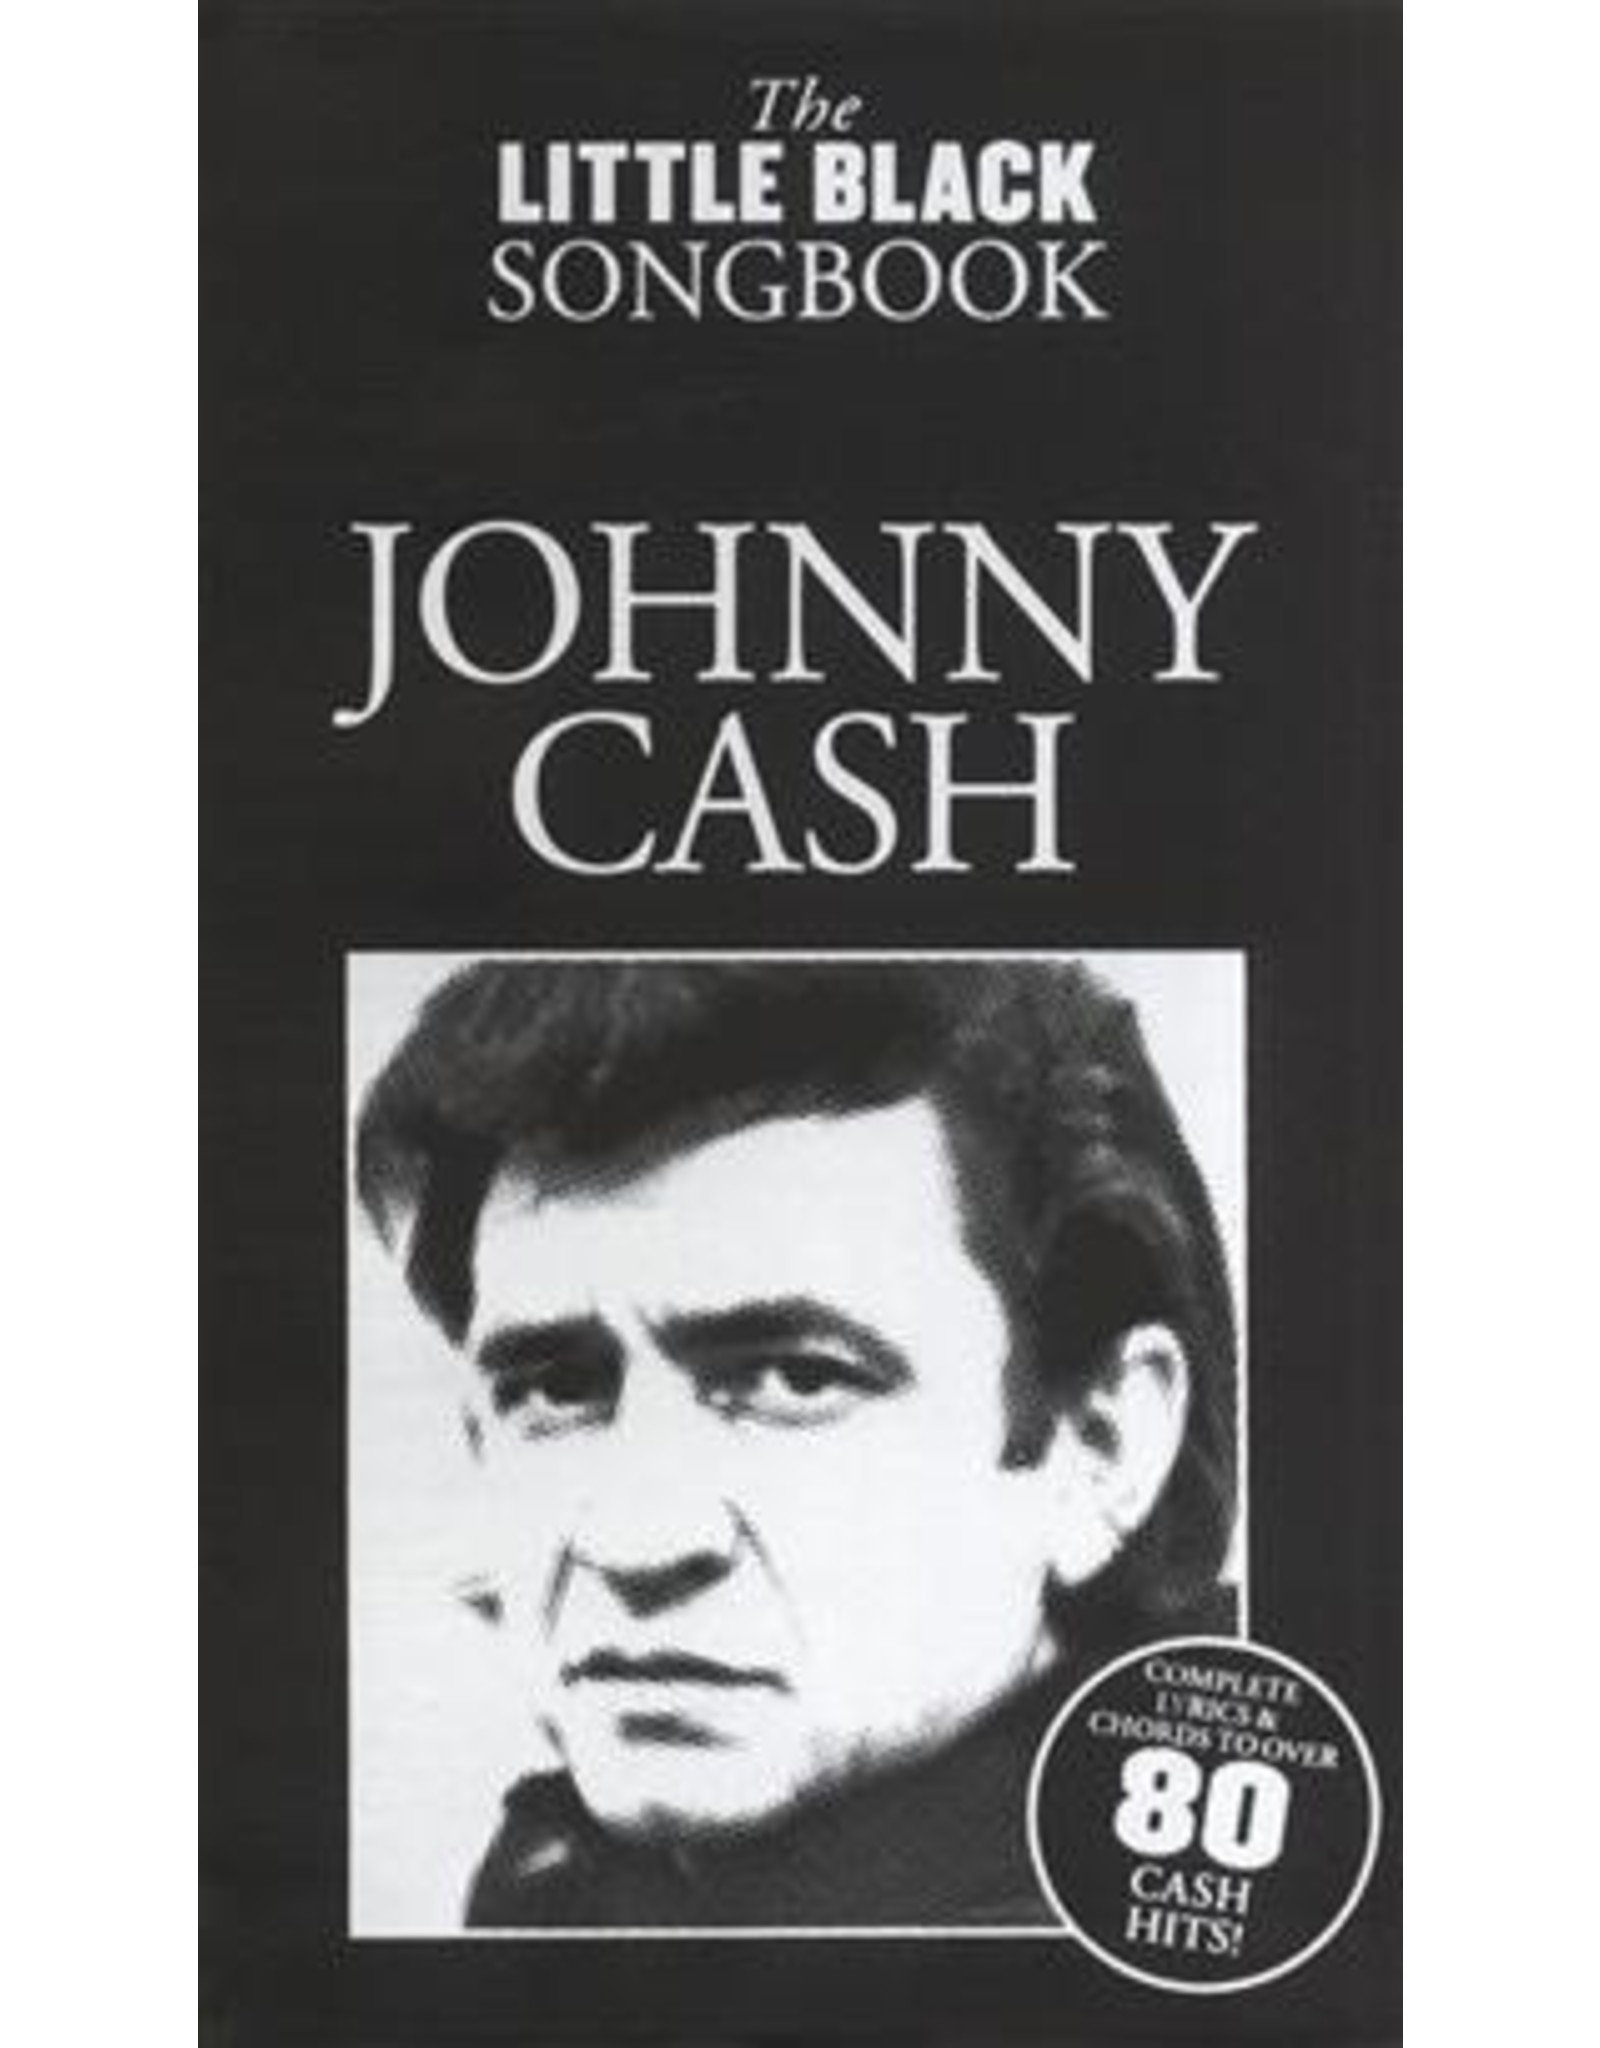 The Little Black Songbook: Johnny Cash